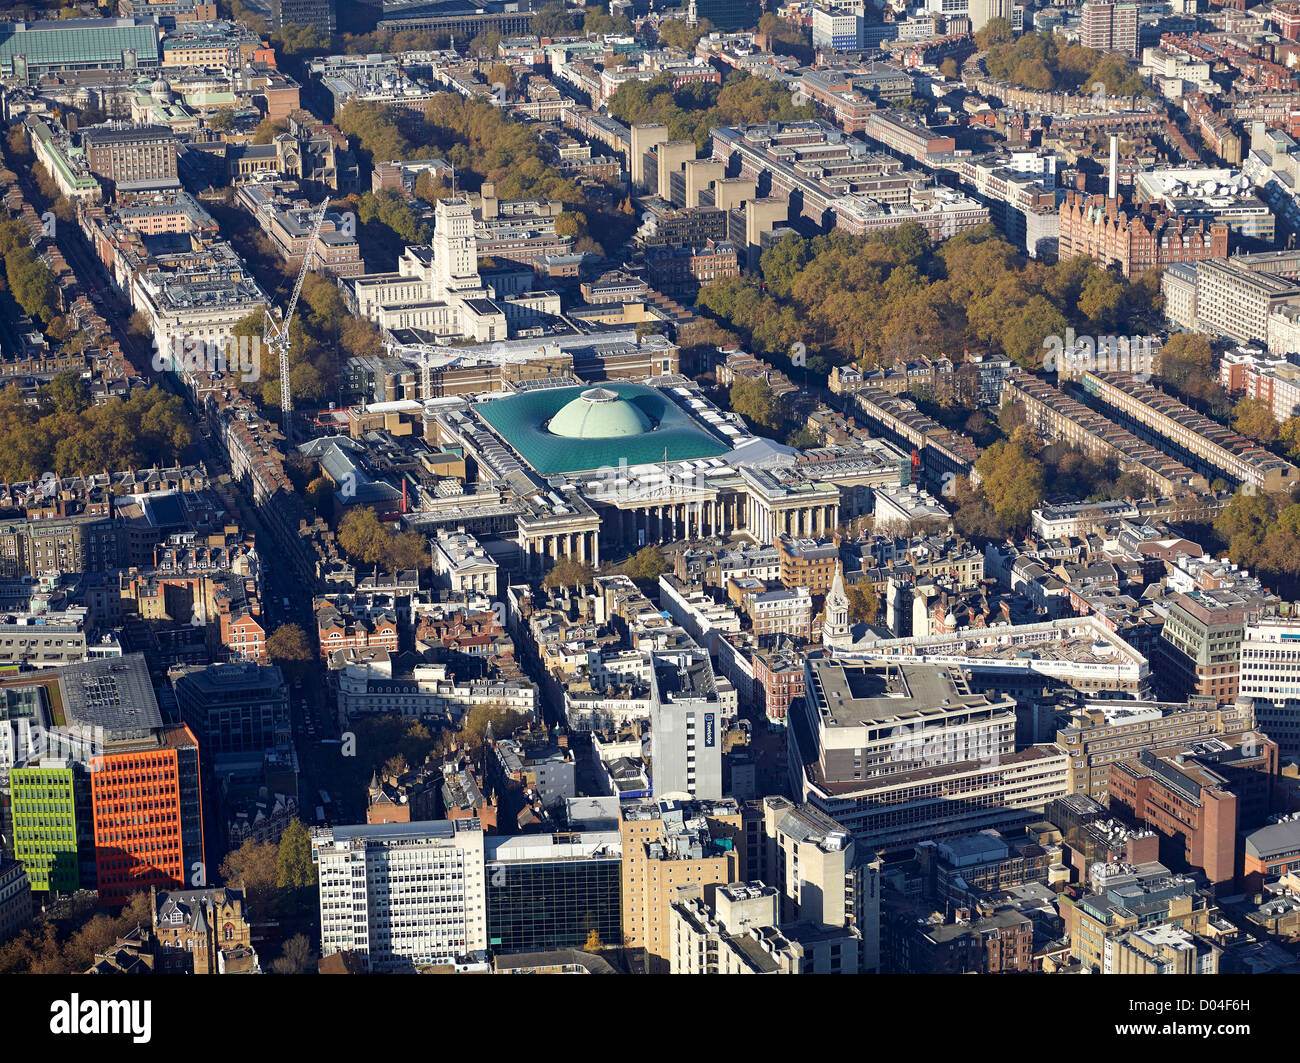 The British Museum from the air, Bloomsbury, London, England UK showing the new Great Court - Stock Image